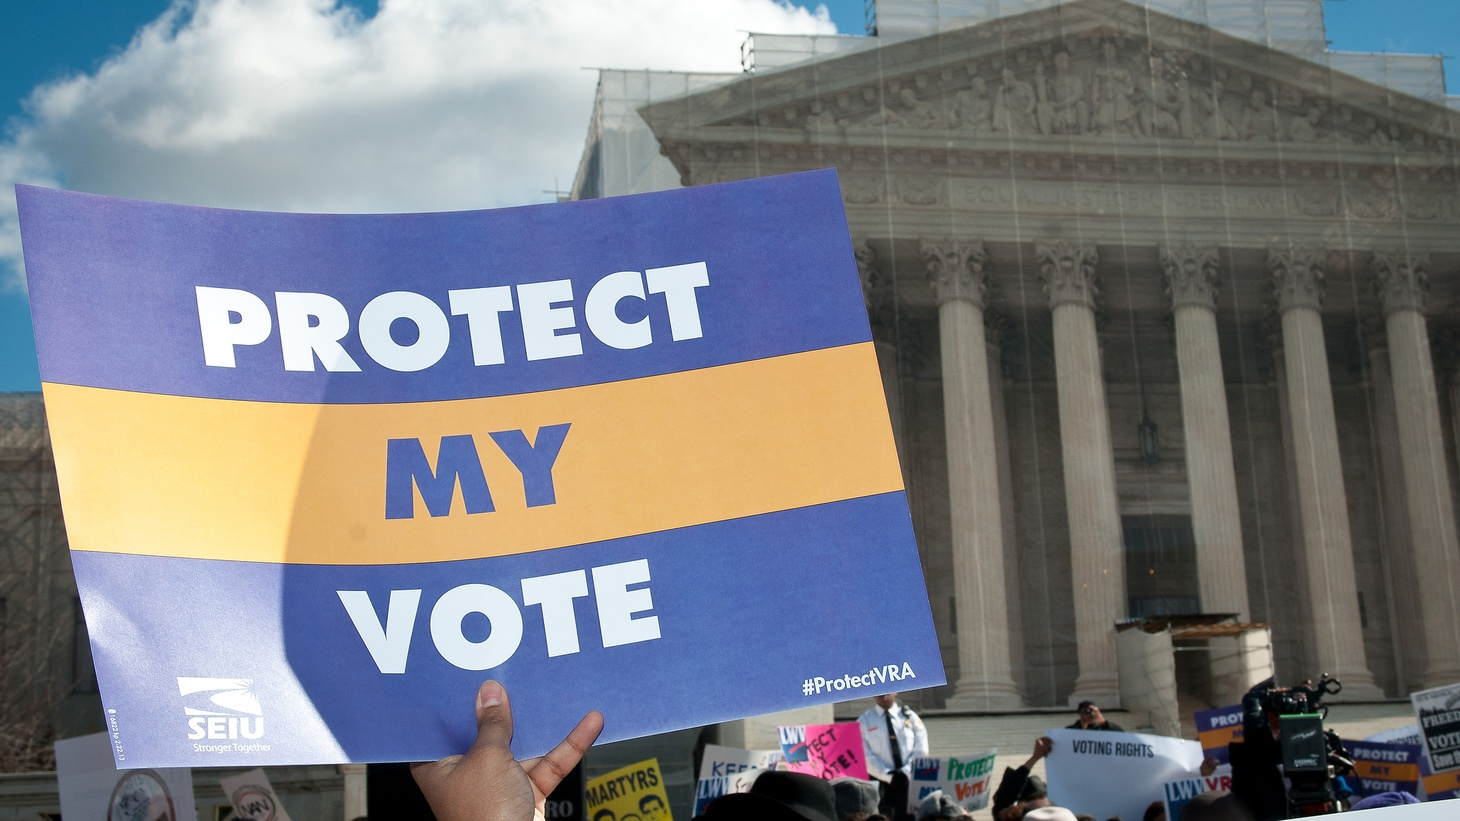 """In 1964, the US Supreme Court's """"one person, one vote"""" ruling gave new political power to minorities and the young in urban centers — especially Los Angeles. Now the Court may decide that a """"person"""" should be defined as an """"eligible voter,"""" and that could turn the tables again. We hear how that could re-make city councils, county boards of supervisors, and the state legislature."""